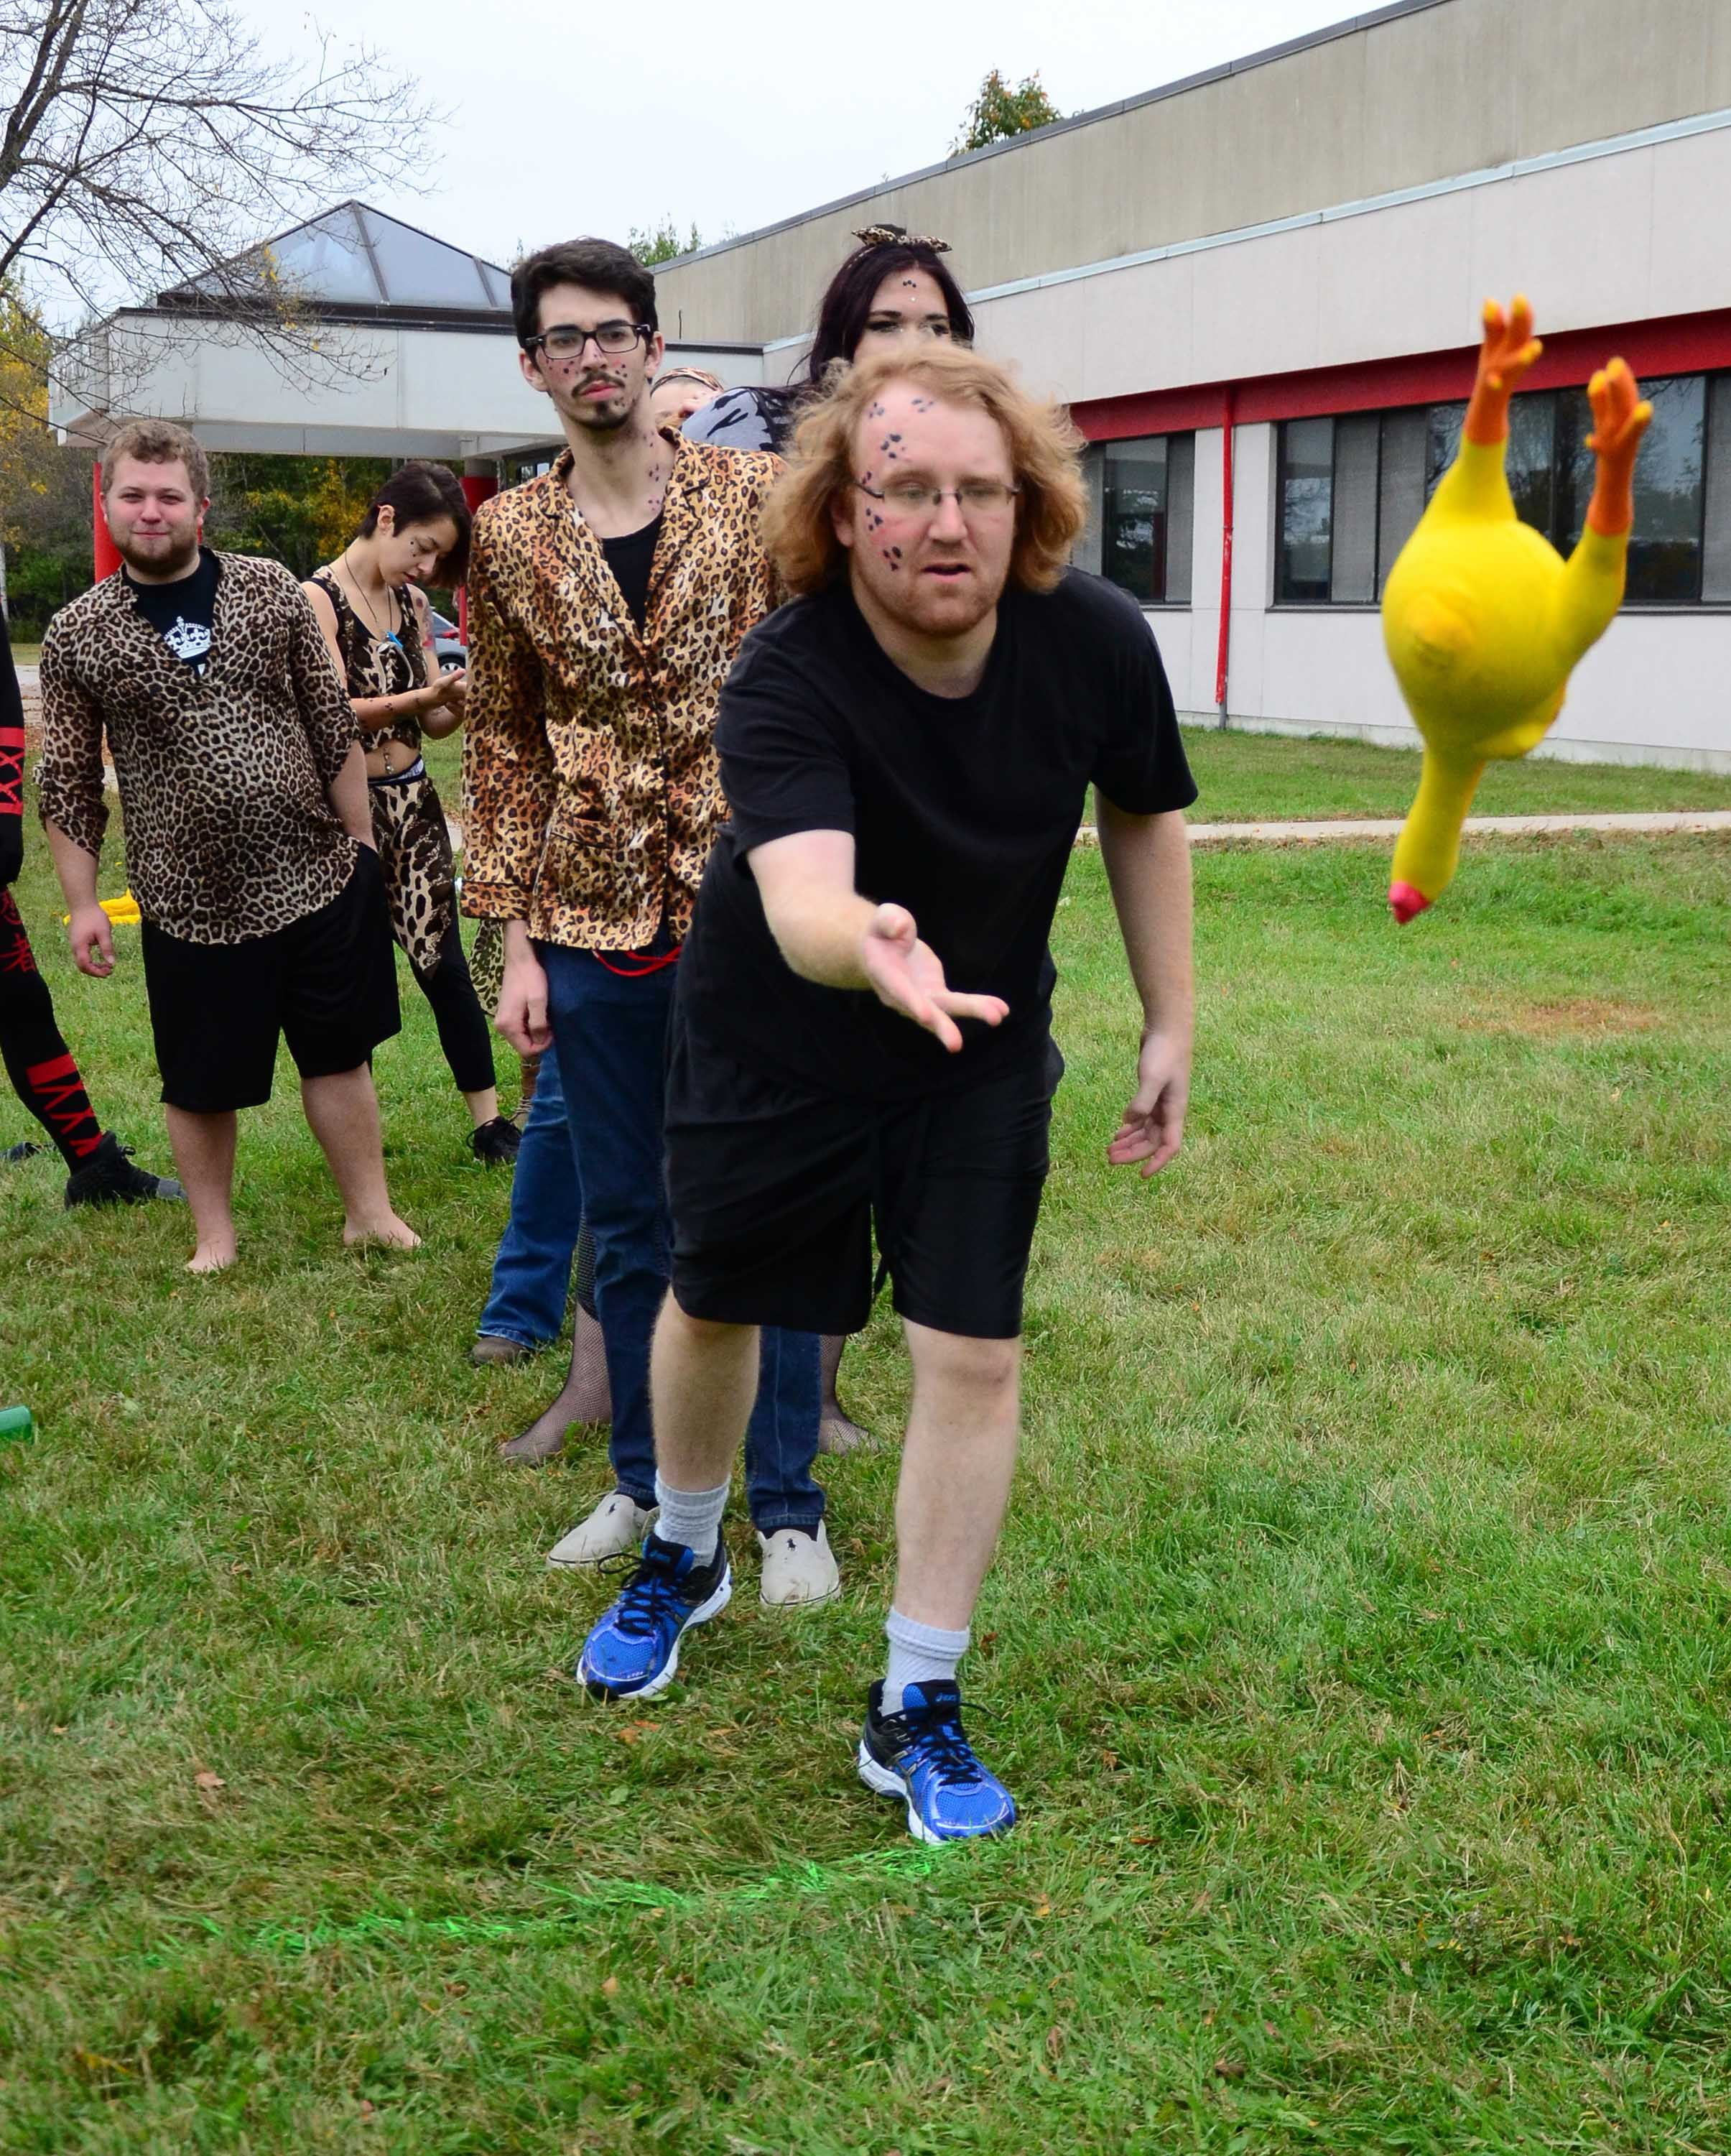 Campus Life Day 2014 - Tossing the chicken!